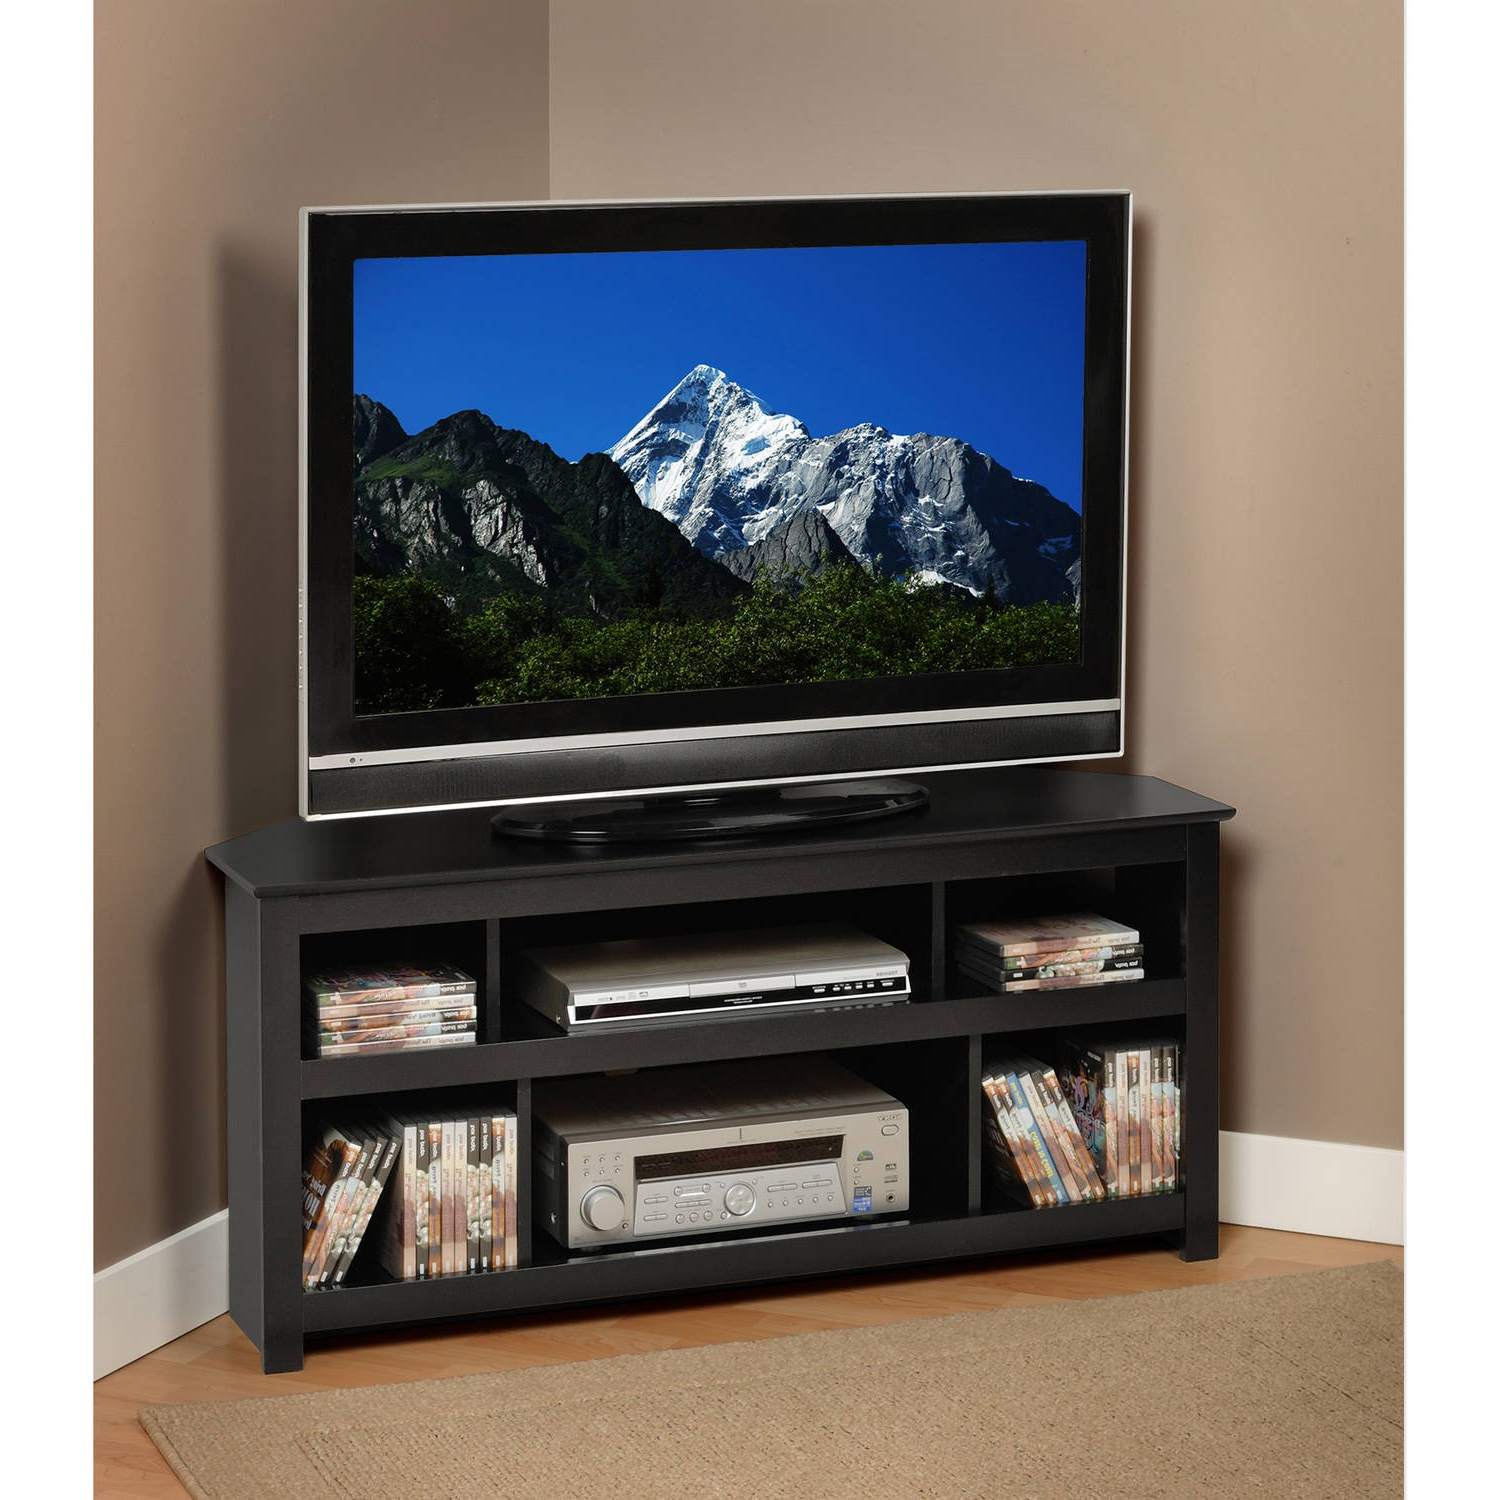 Best And Newest Corner Tv Stands For 46 Inch Flat Screen Within Corner Tv Stand 46 Inch Flat Screen – Corner Designs (Gallery 20 of 20)